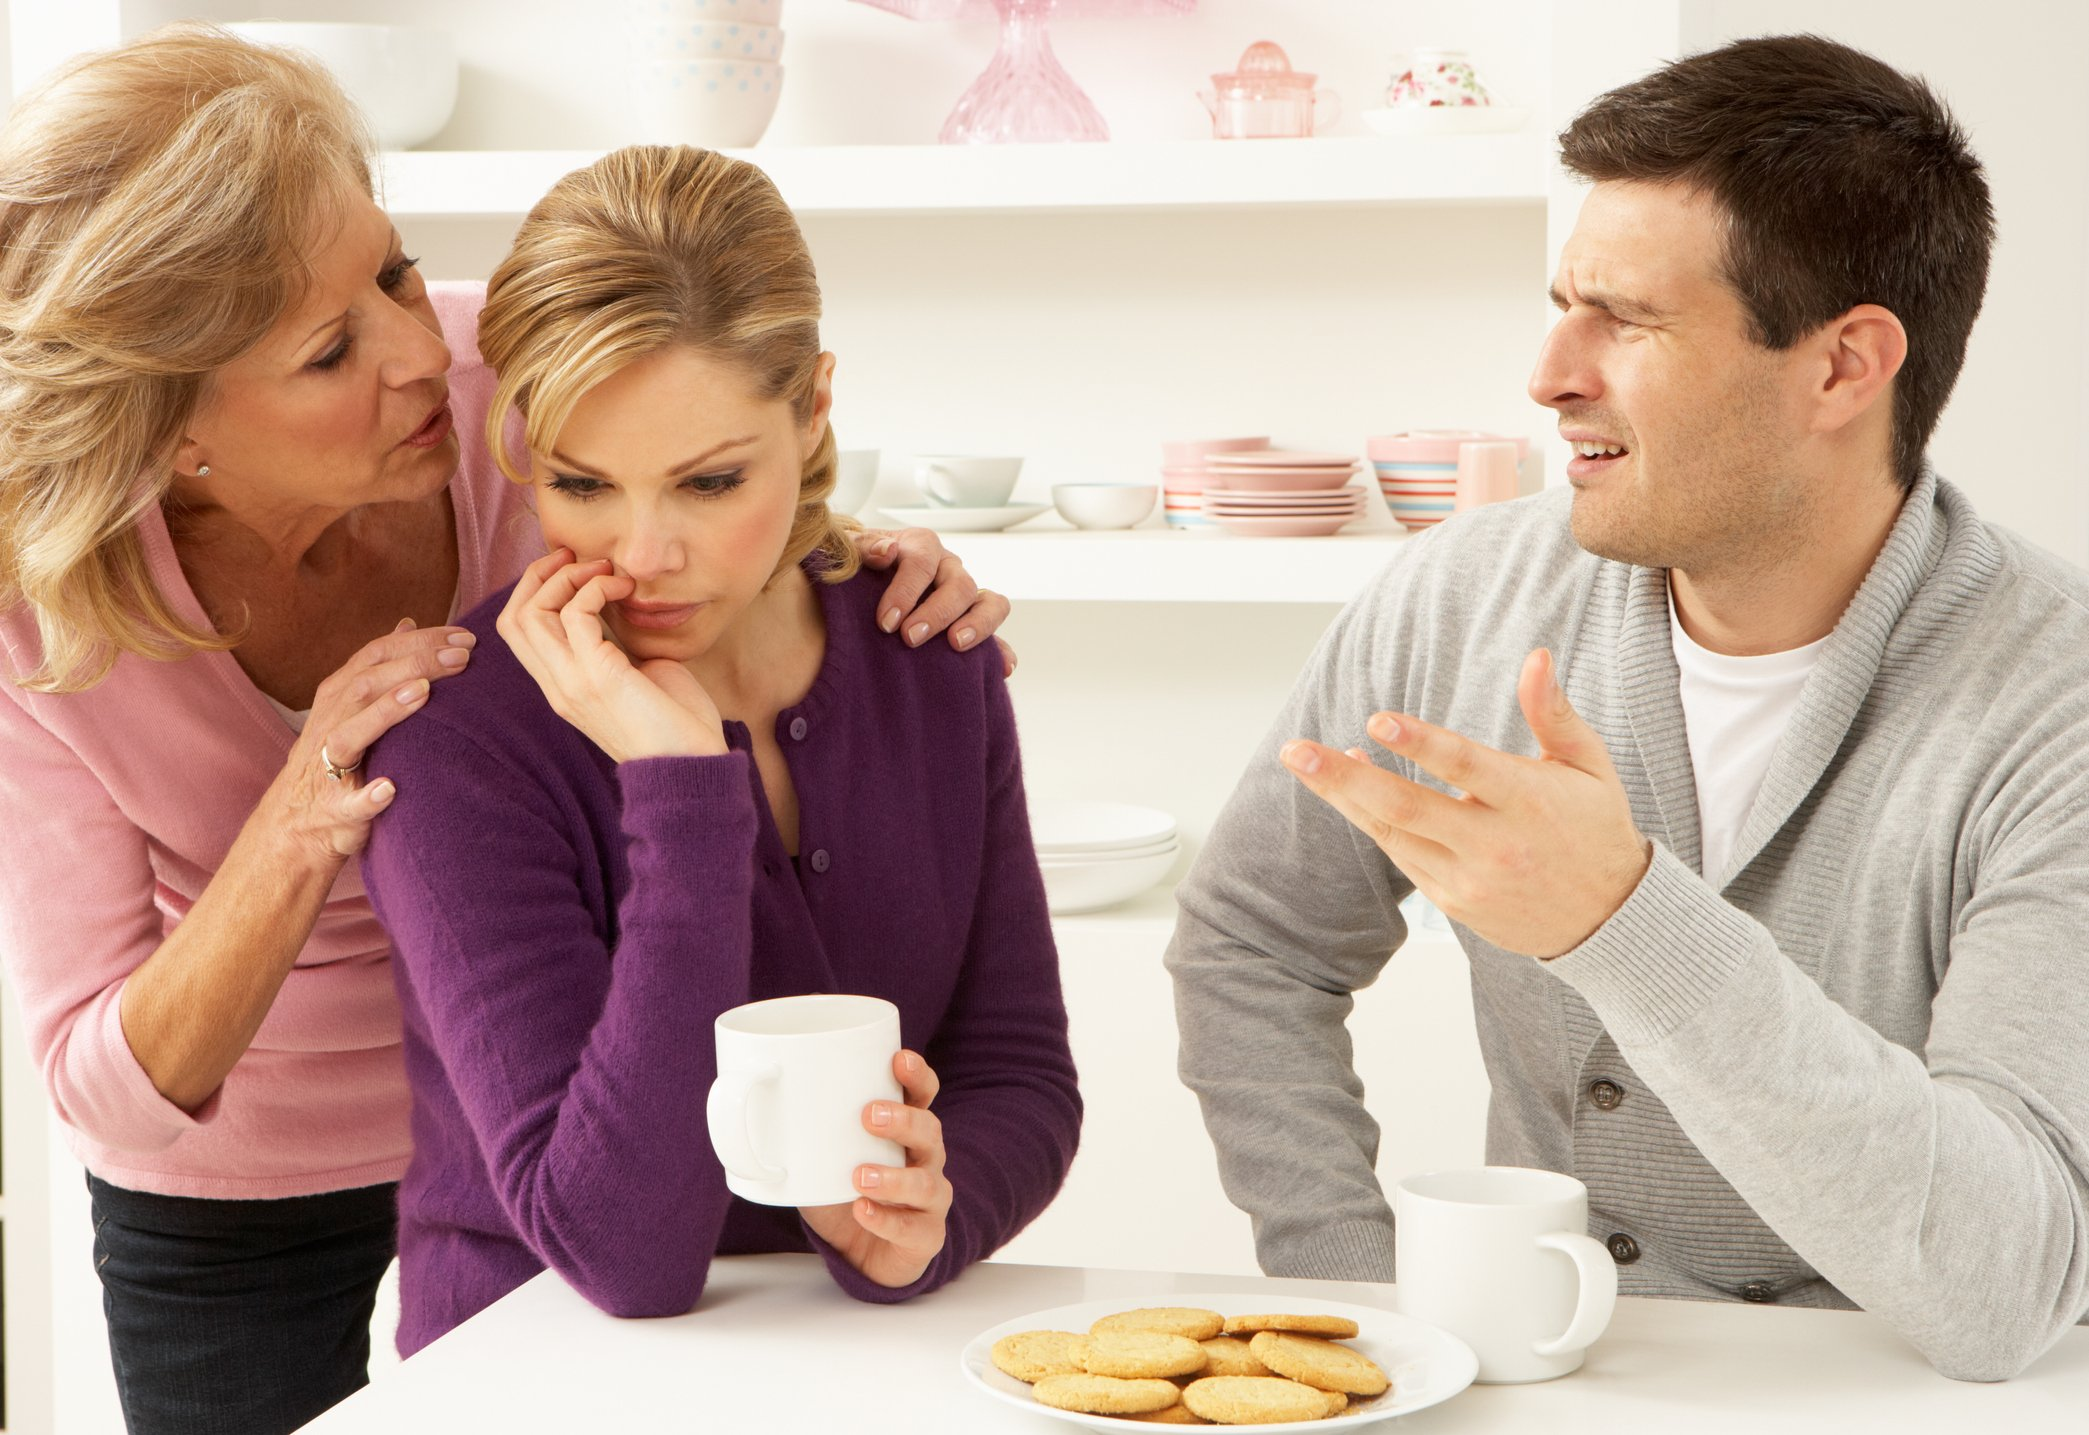 Man is enraged on seeing his mother trying to force her decision on his wife | Photo: Getty Images